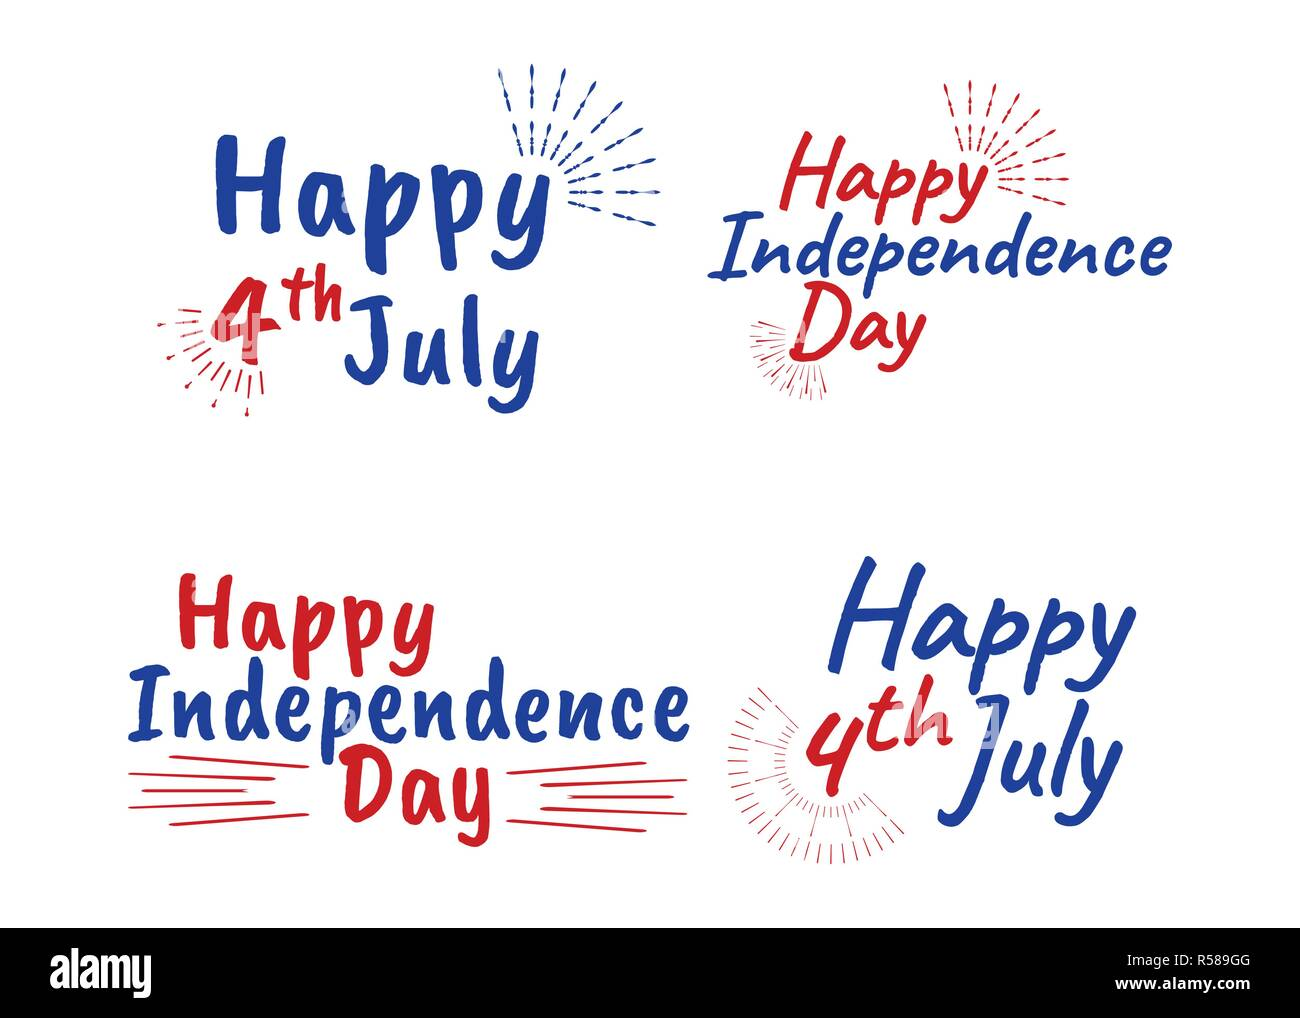 Happy 4 Th July And Independence Day Greeting Cards With Font